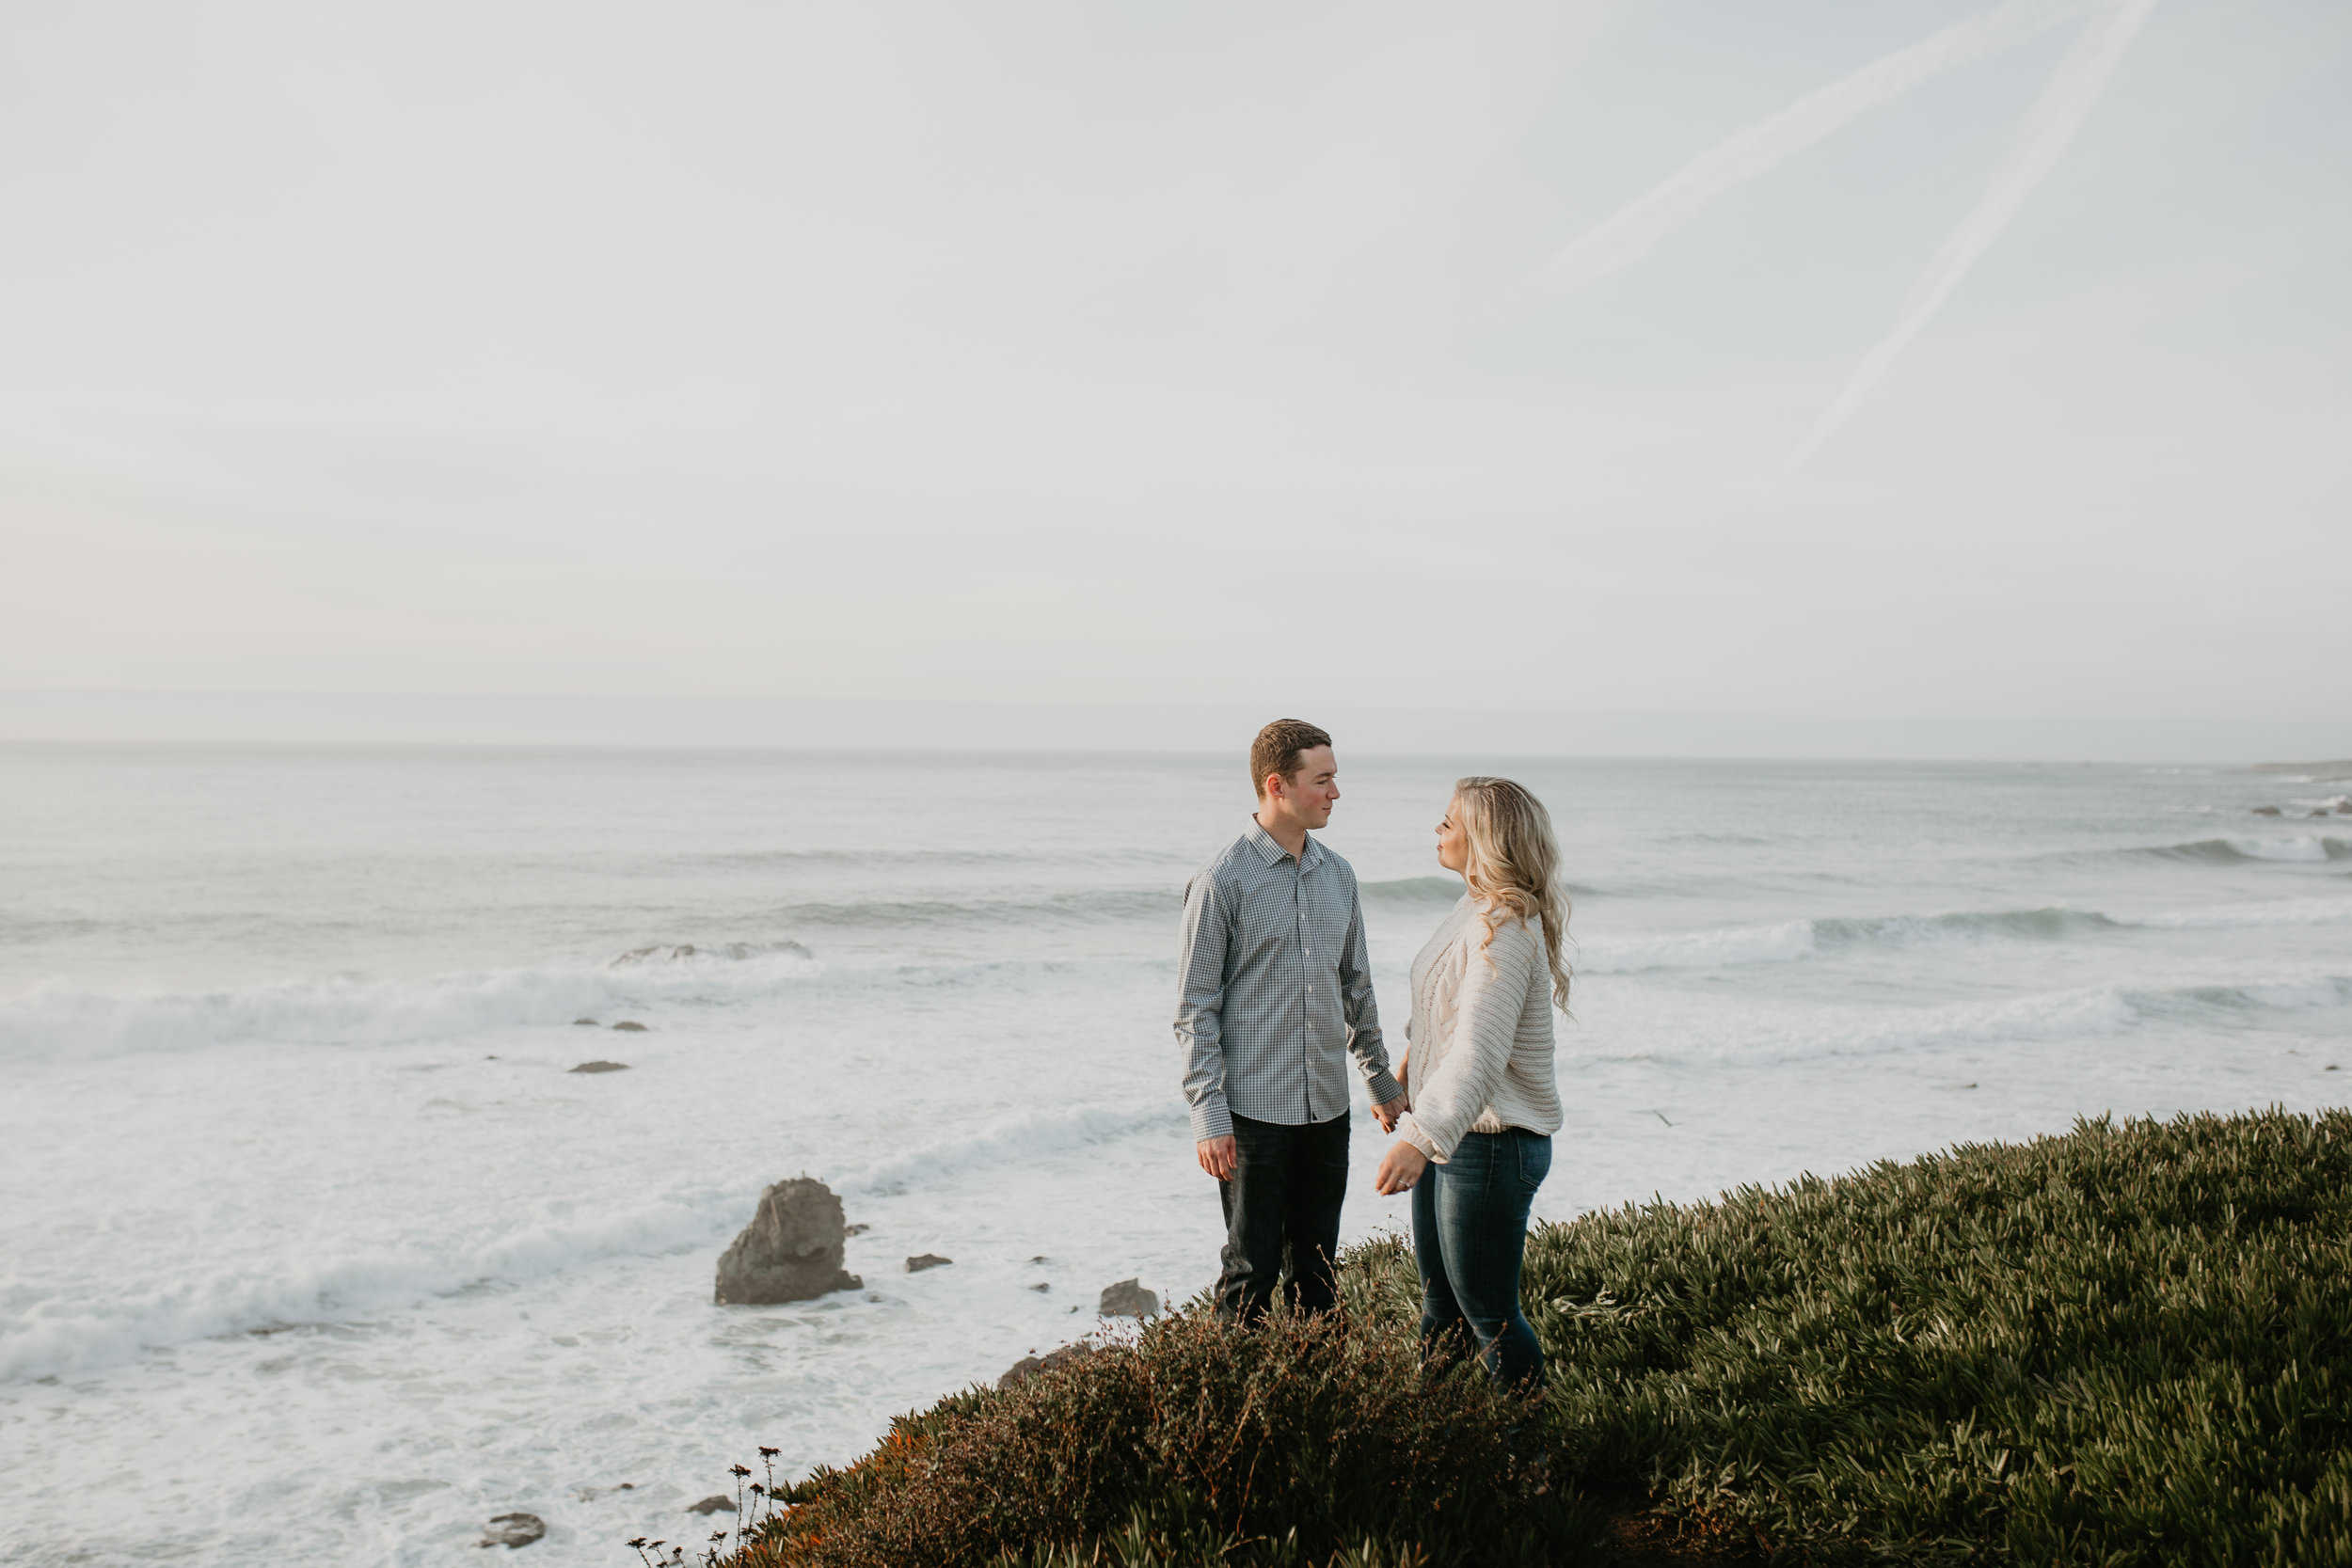 Nicole-Daacke-Photography-big-sur-garrapatta-state-park-adventurous-engagement-session-bixy-bridge-elopement-big-sur-wedding-photographer-monterey-elopement-photographer-california-golden-sunset-coast-photos-13.jpg